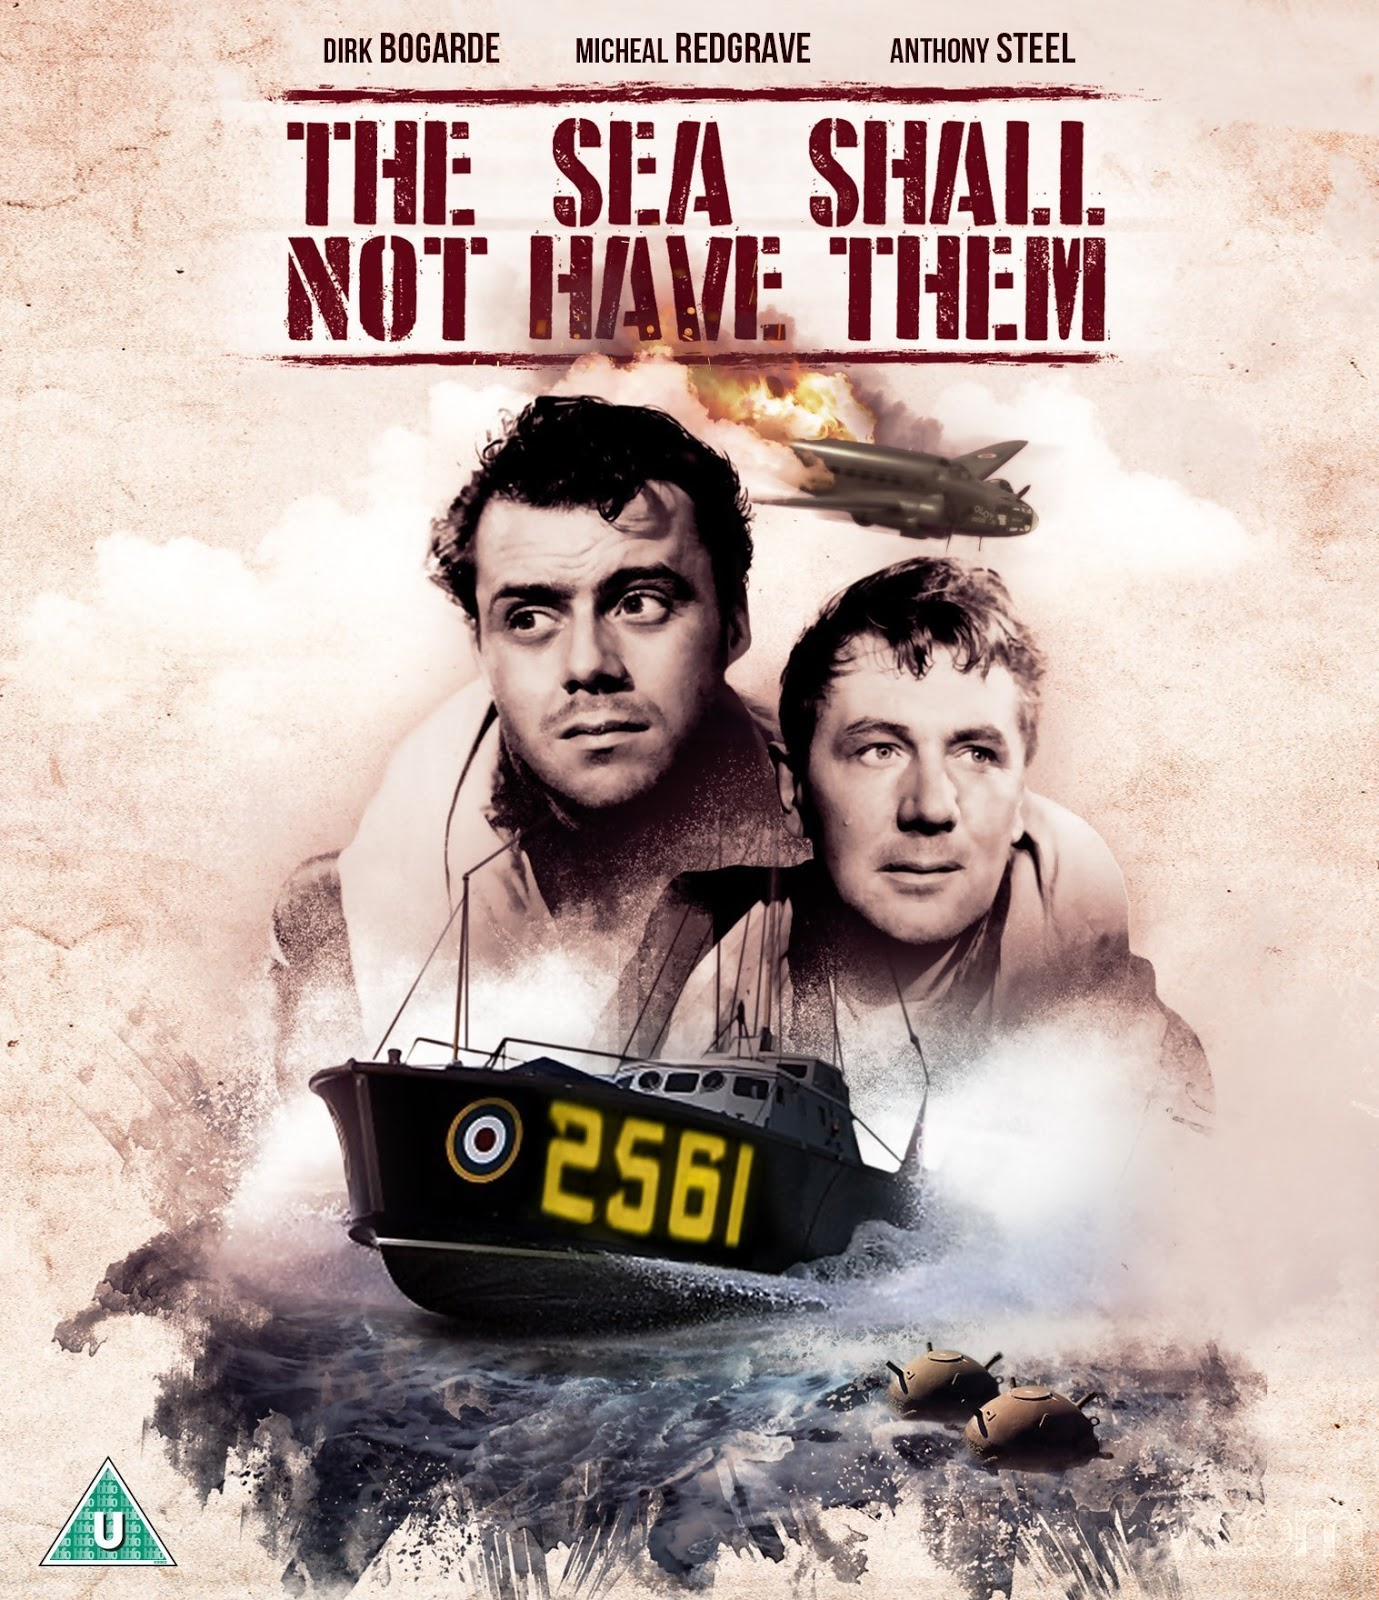 The Sea Shall Not Have Them 1954